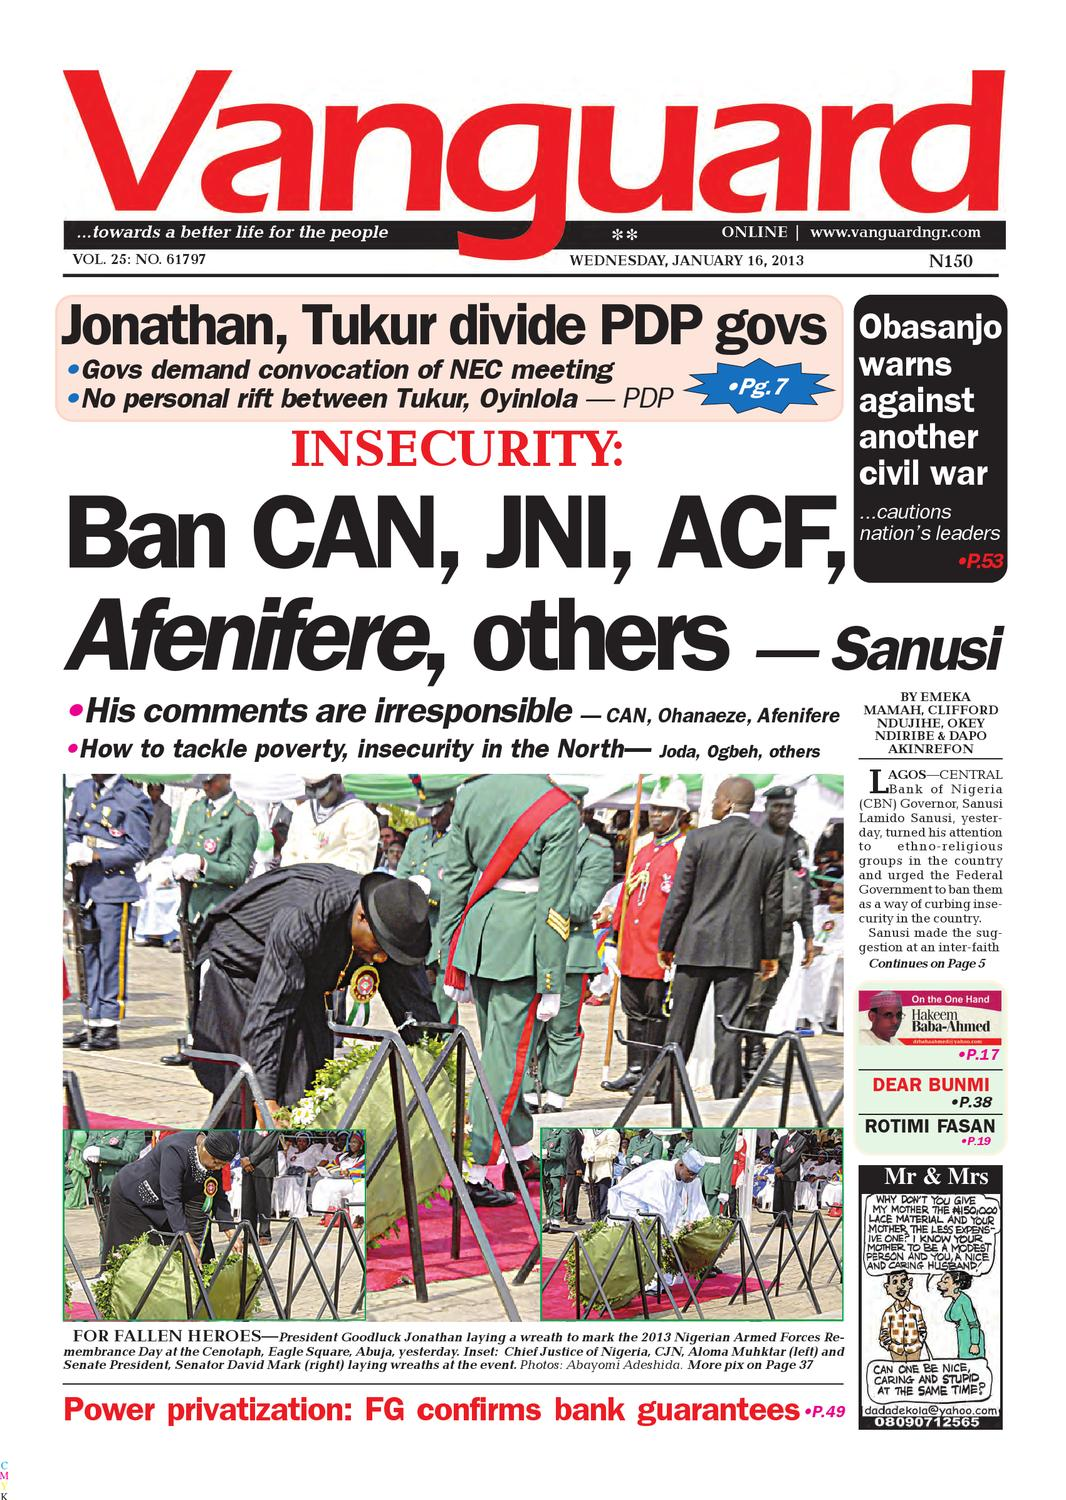 INSECURITY: Ban CAN, JNI, ACF,Afenifere, others — Sanusi by